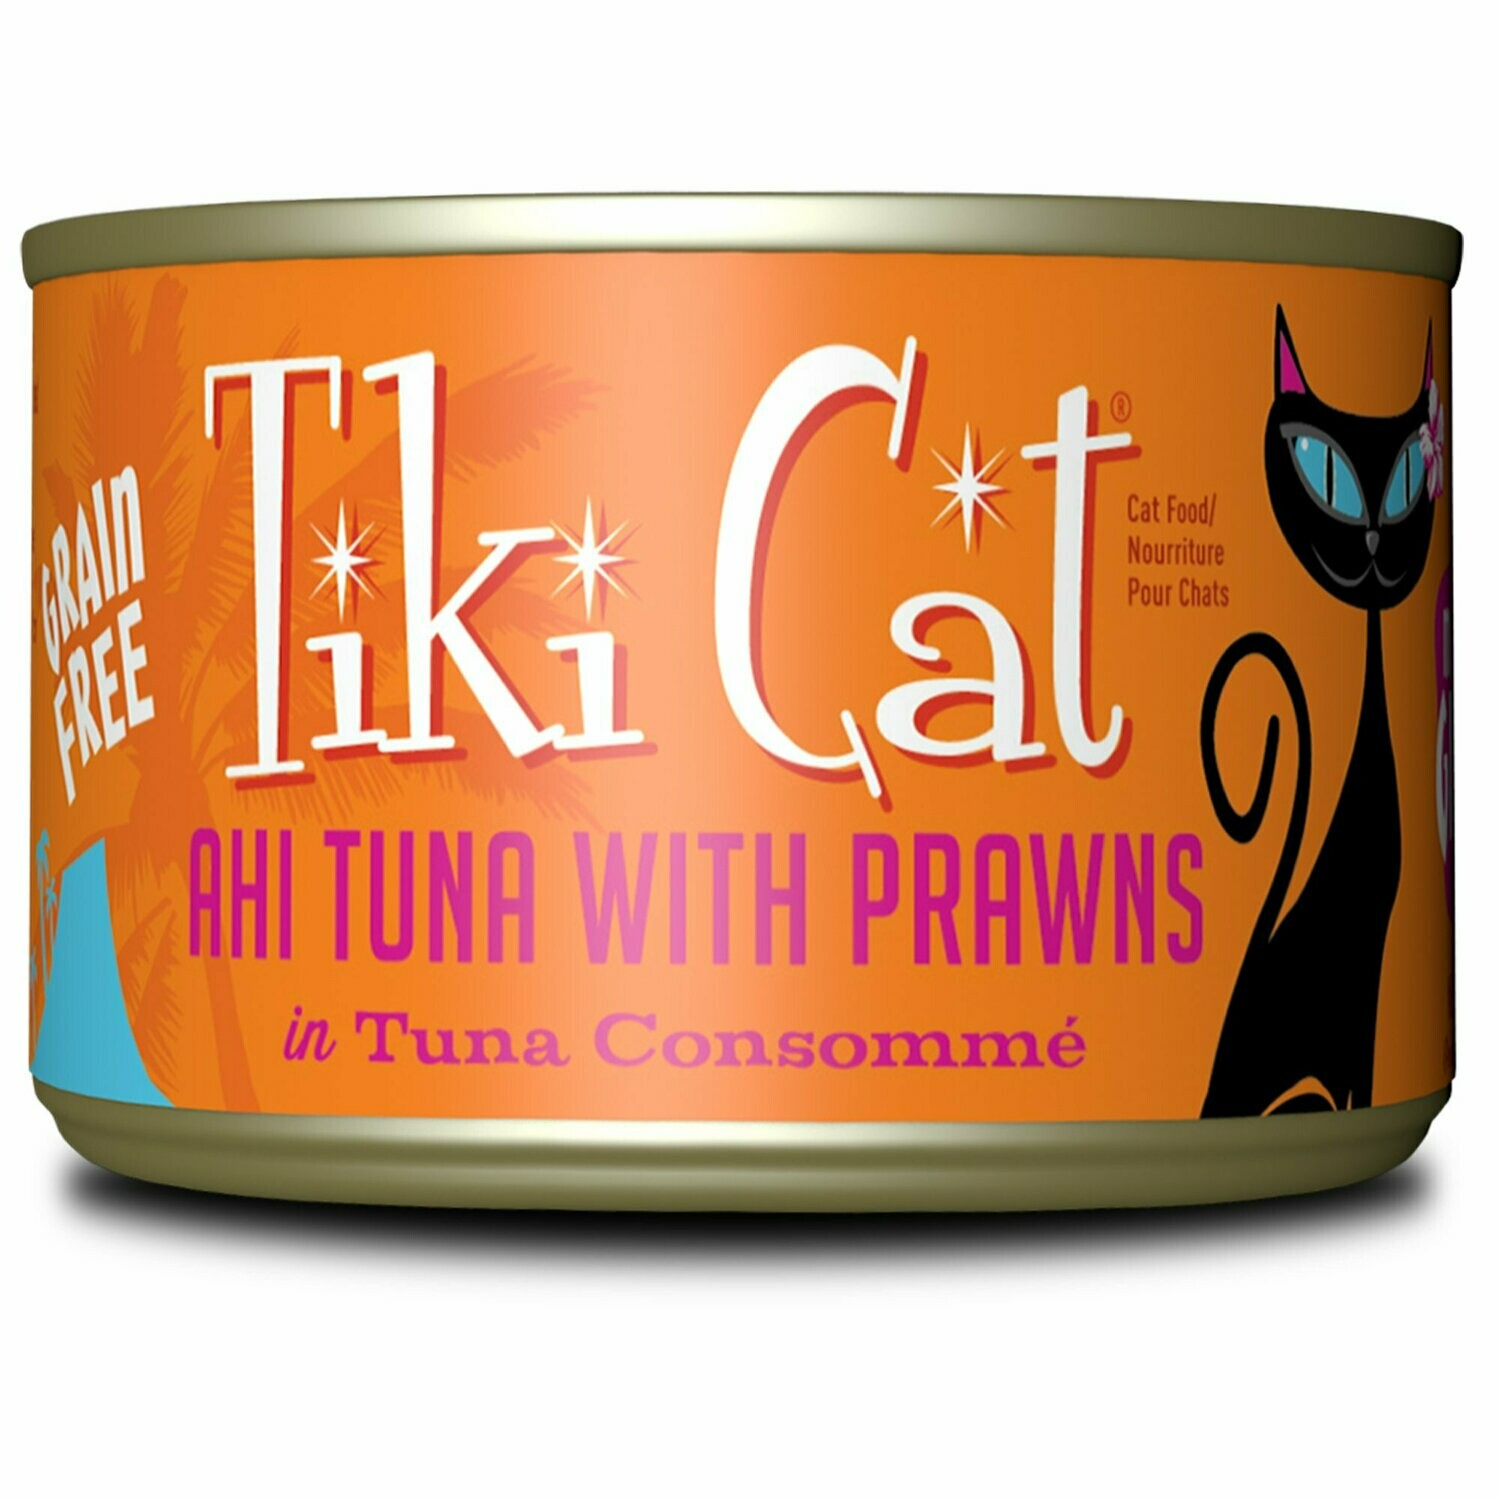 Tiki Cat Manana Grill Ahi Tuna Prawns Wet Cat Food, 6 oz., Case of 8 (10/20) (A.L4)